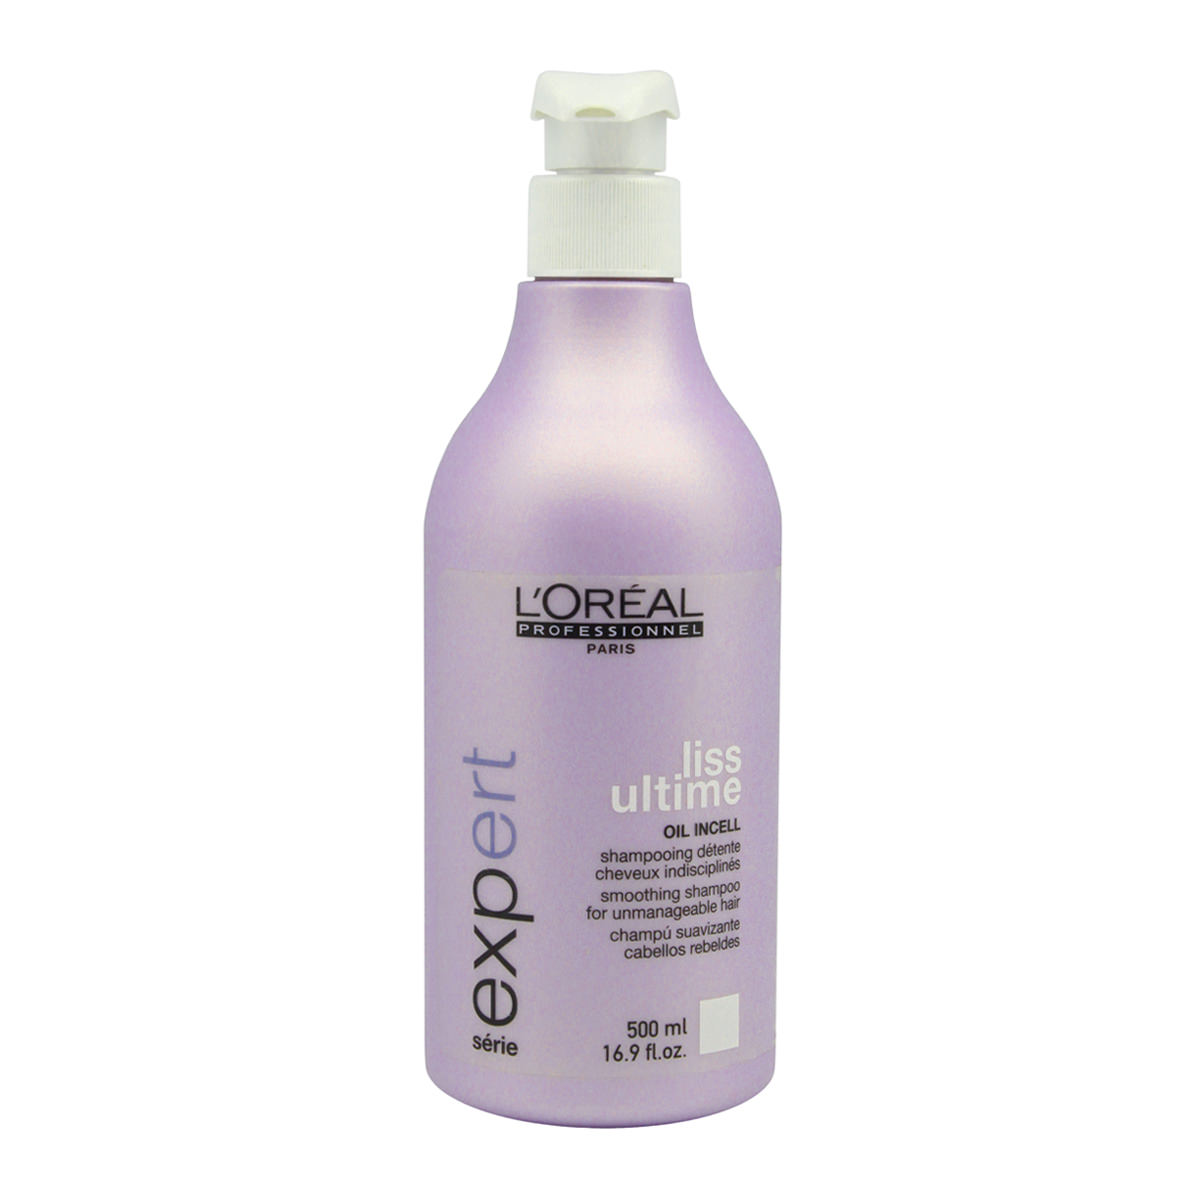 L'oreal-Professionnel-Liss-Ultime-Oil-Incell-Shampoo-Pump-(500-ml)-high-sfw(1)